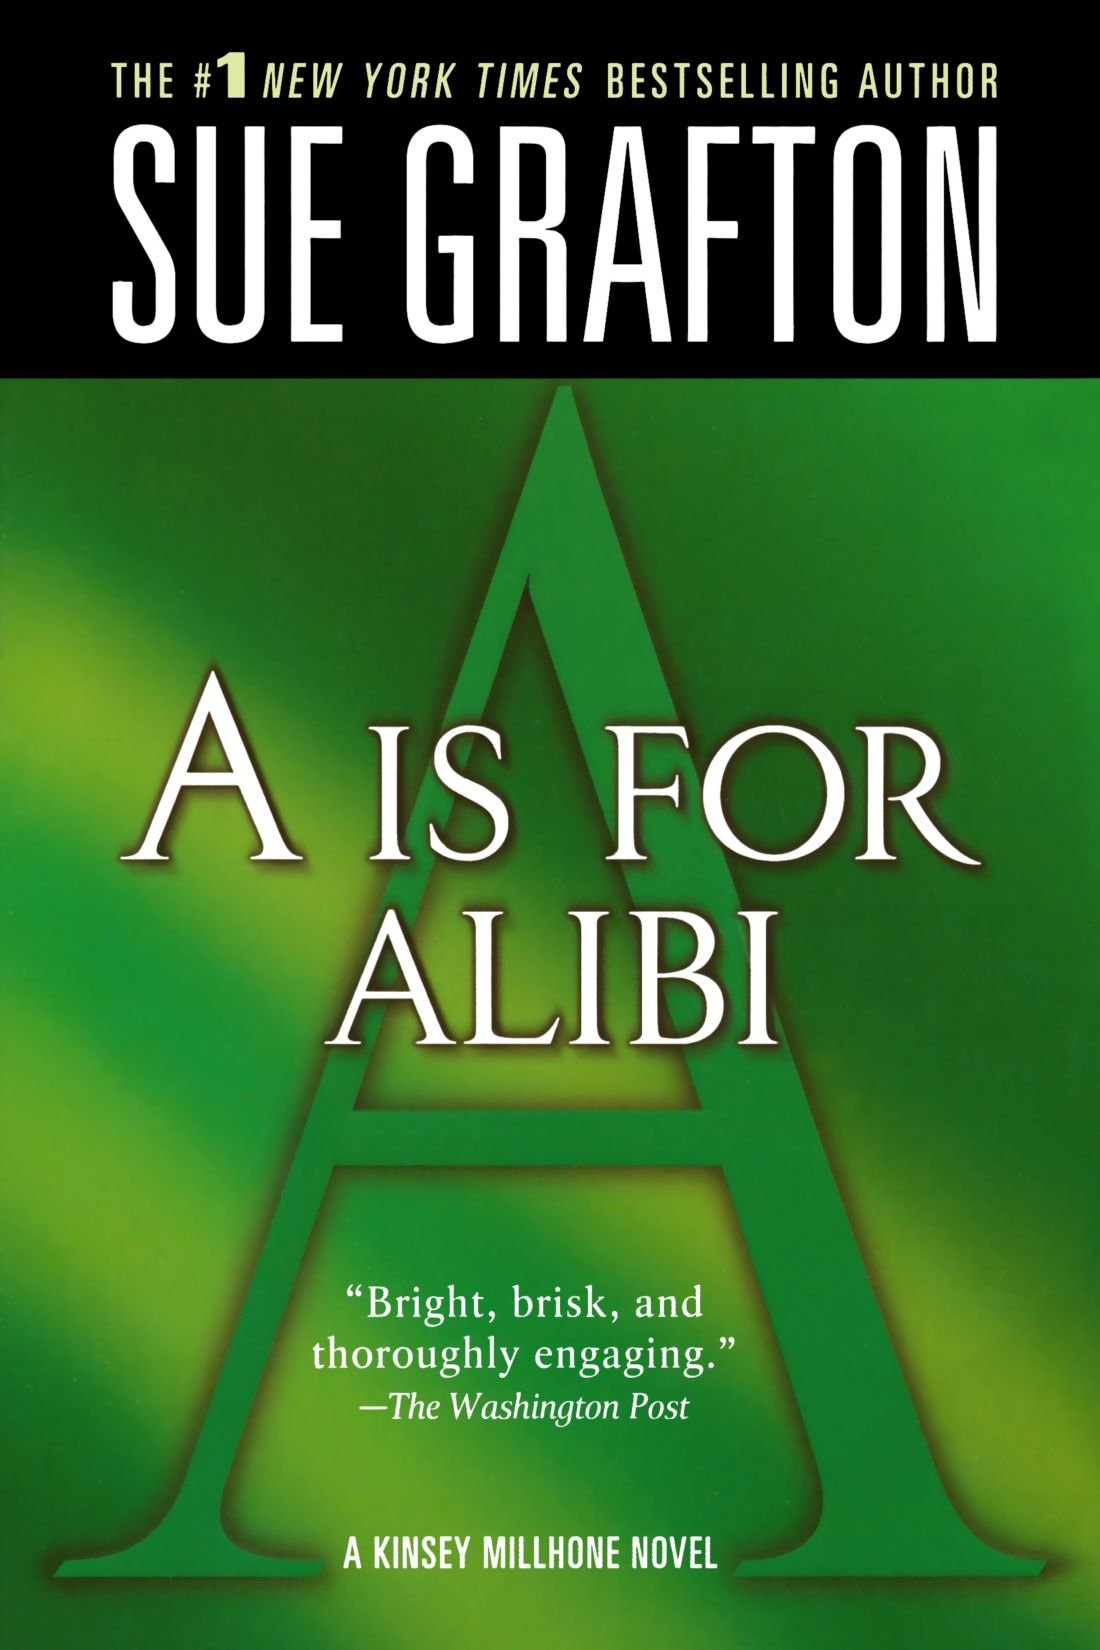 Remembering Sue Grafton